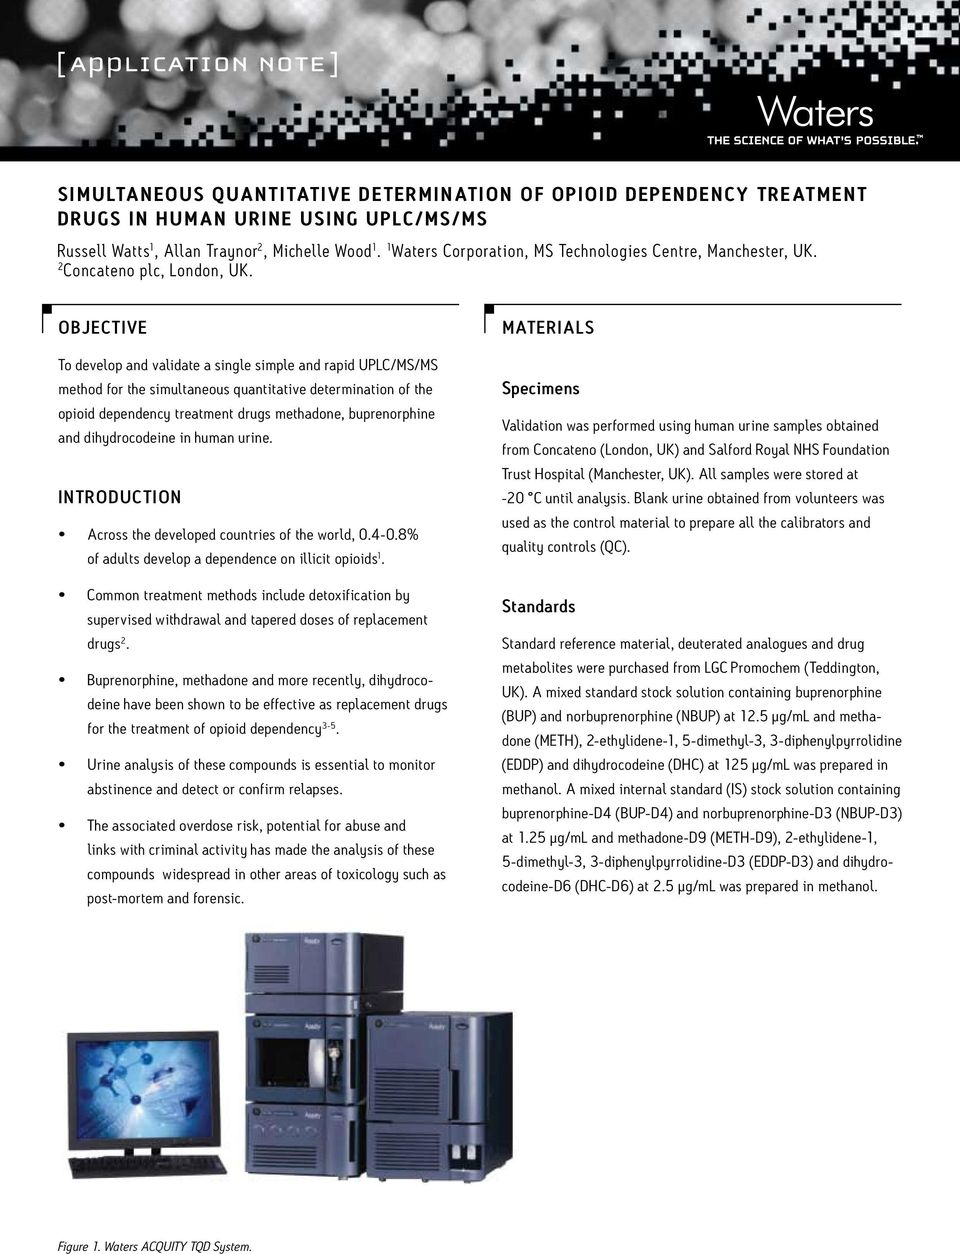 OBJECTIVE To develop and validate a single simple and rapid UPLC/MS/MS method for the simultaneous quantitative determination of the opioid dependency treatment drugs methadone, buprenorphine and